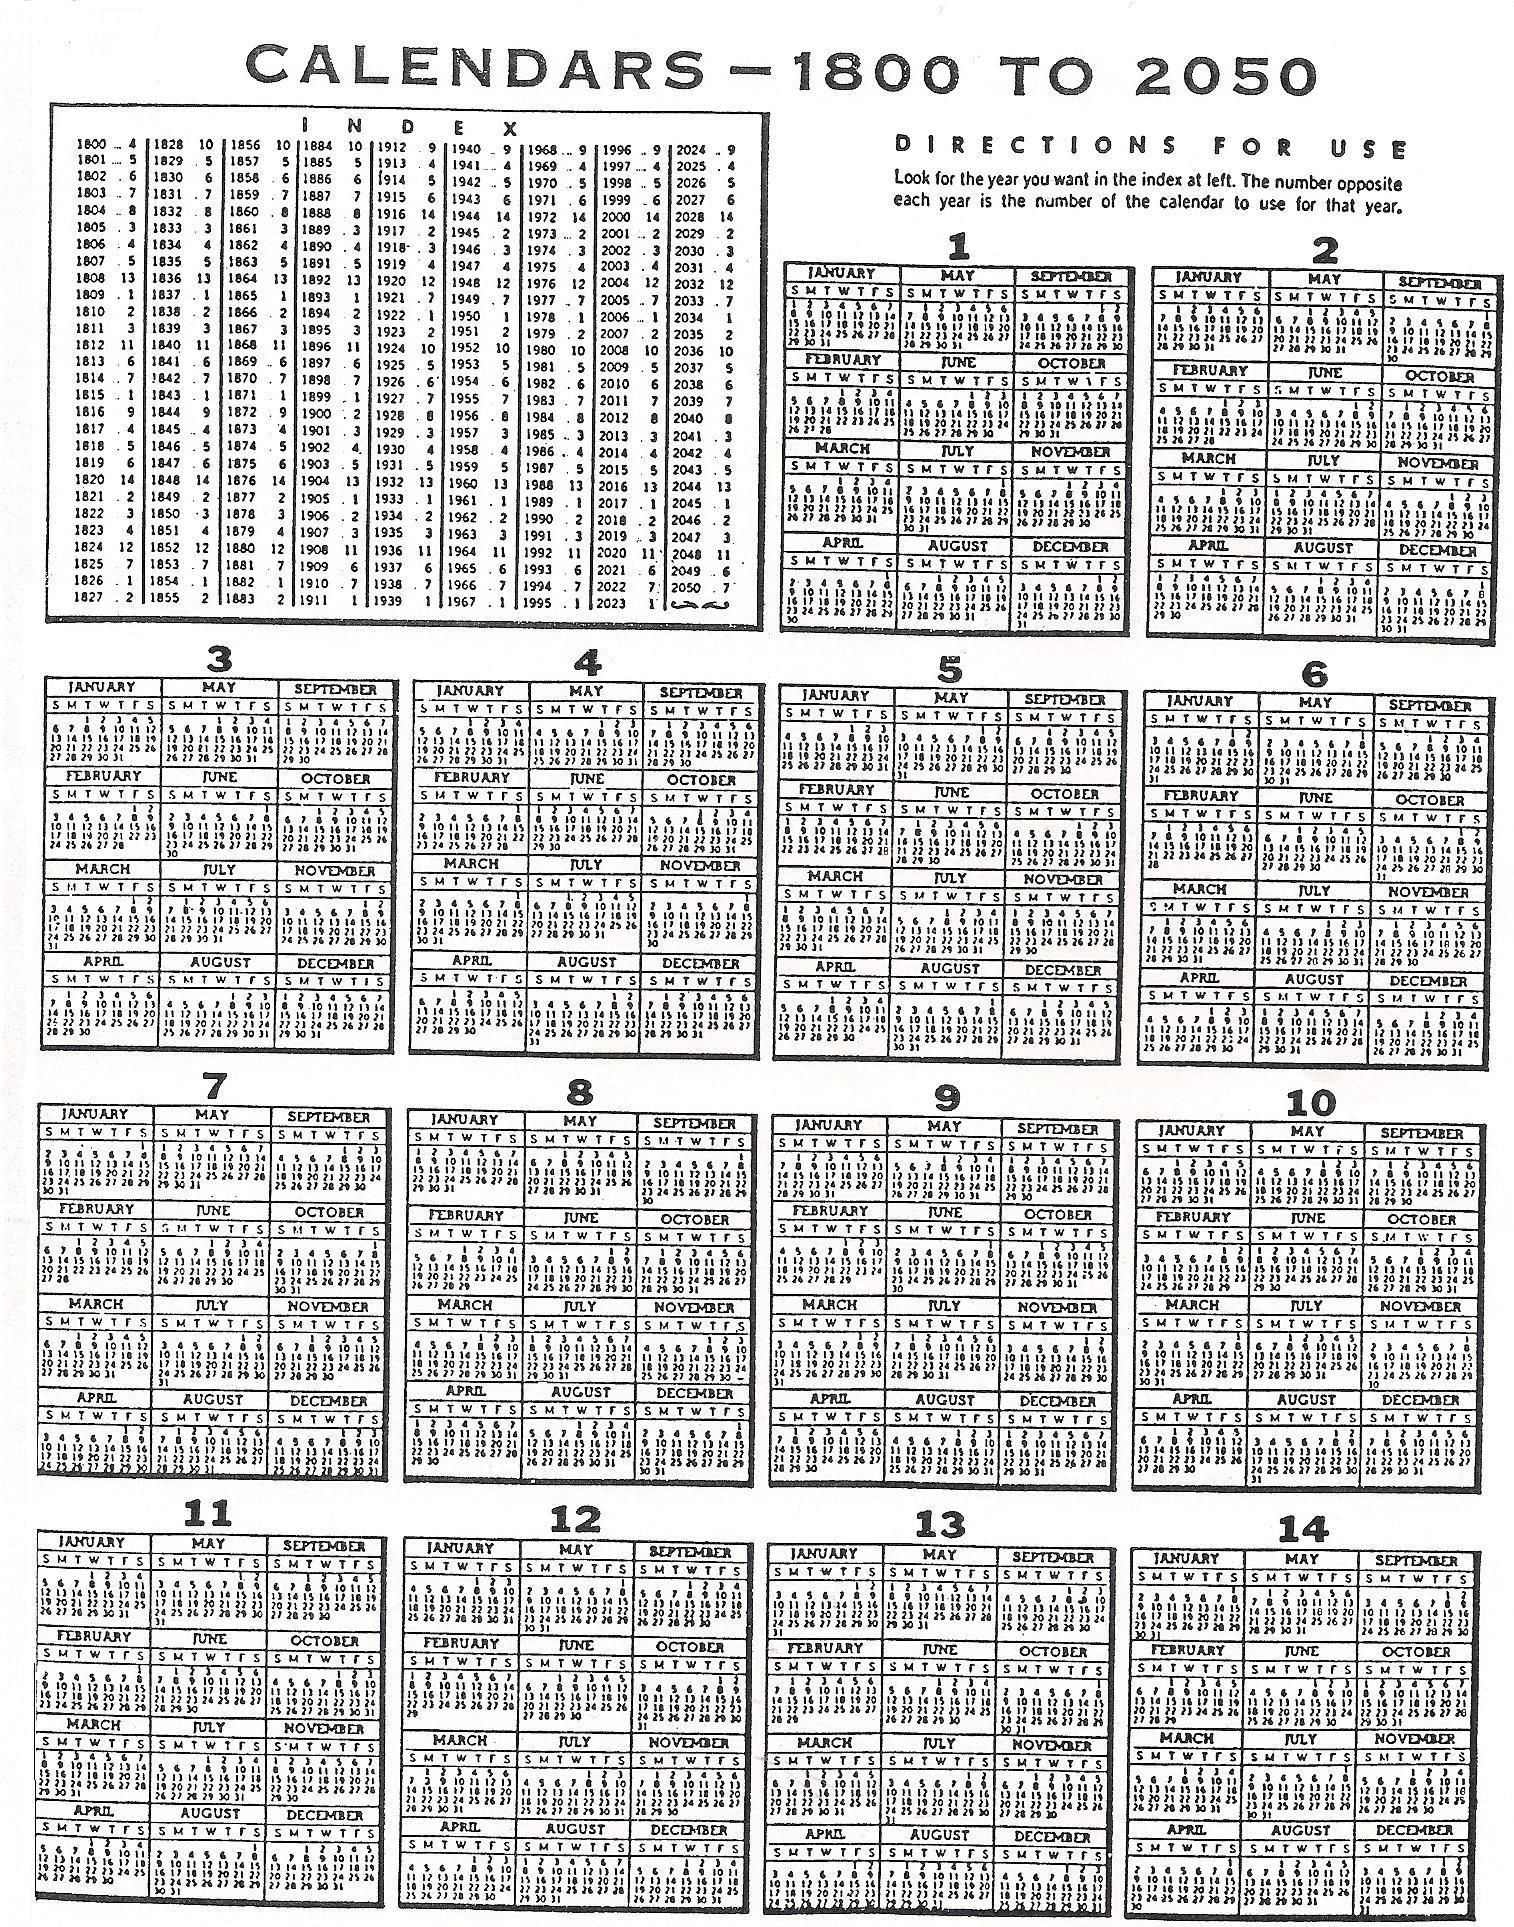 Perpetual Calendar 1800 To 2050 : Perpetual calendar to look for the year you want in